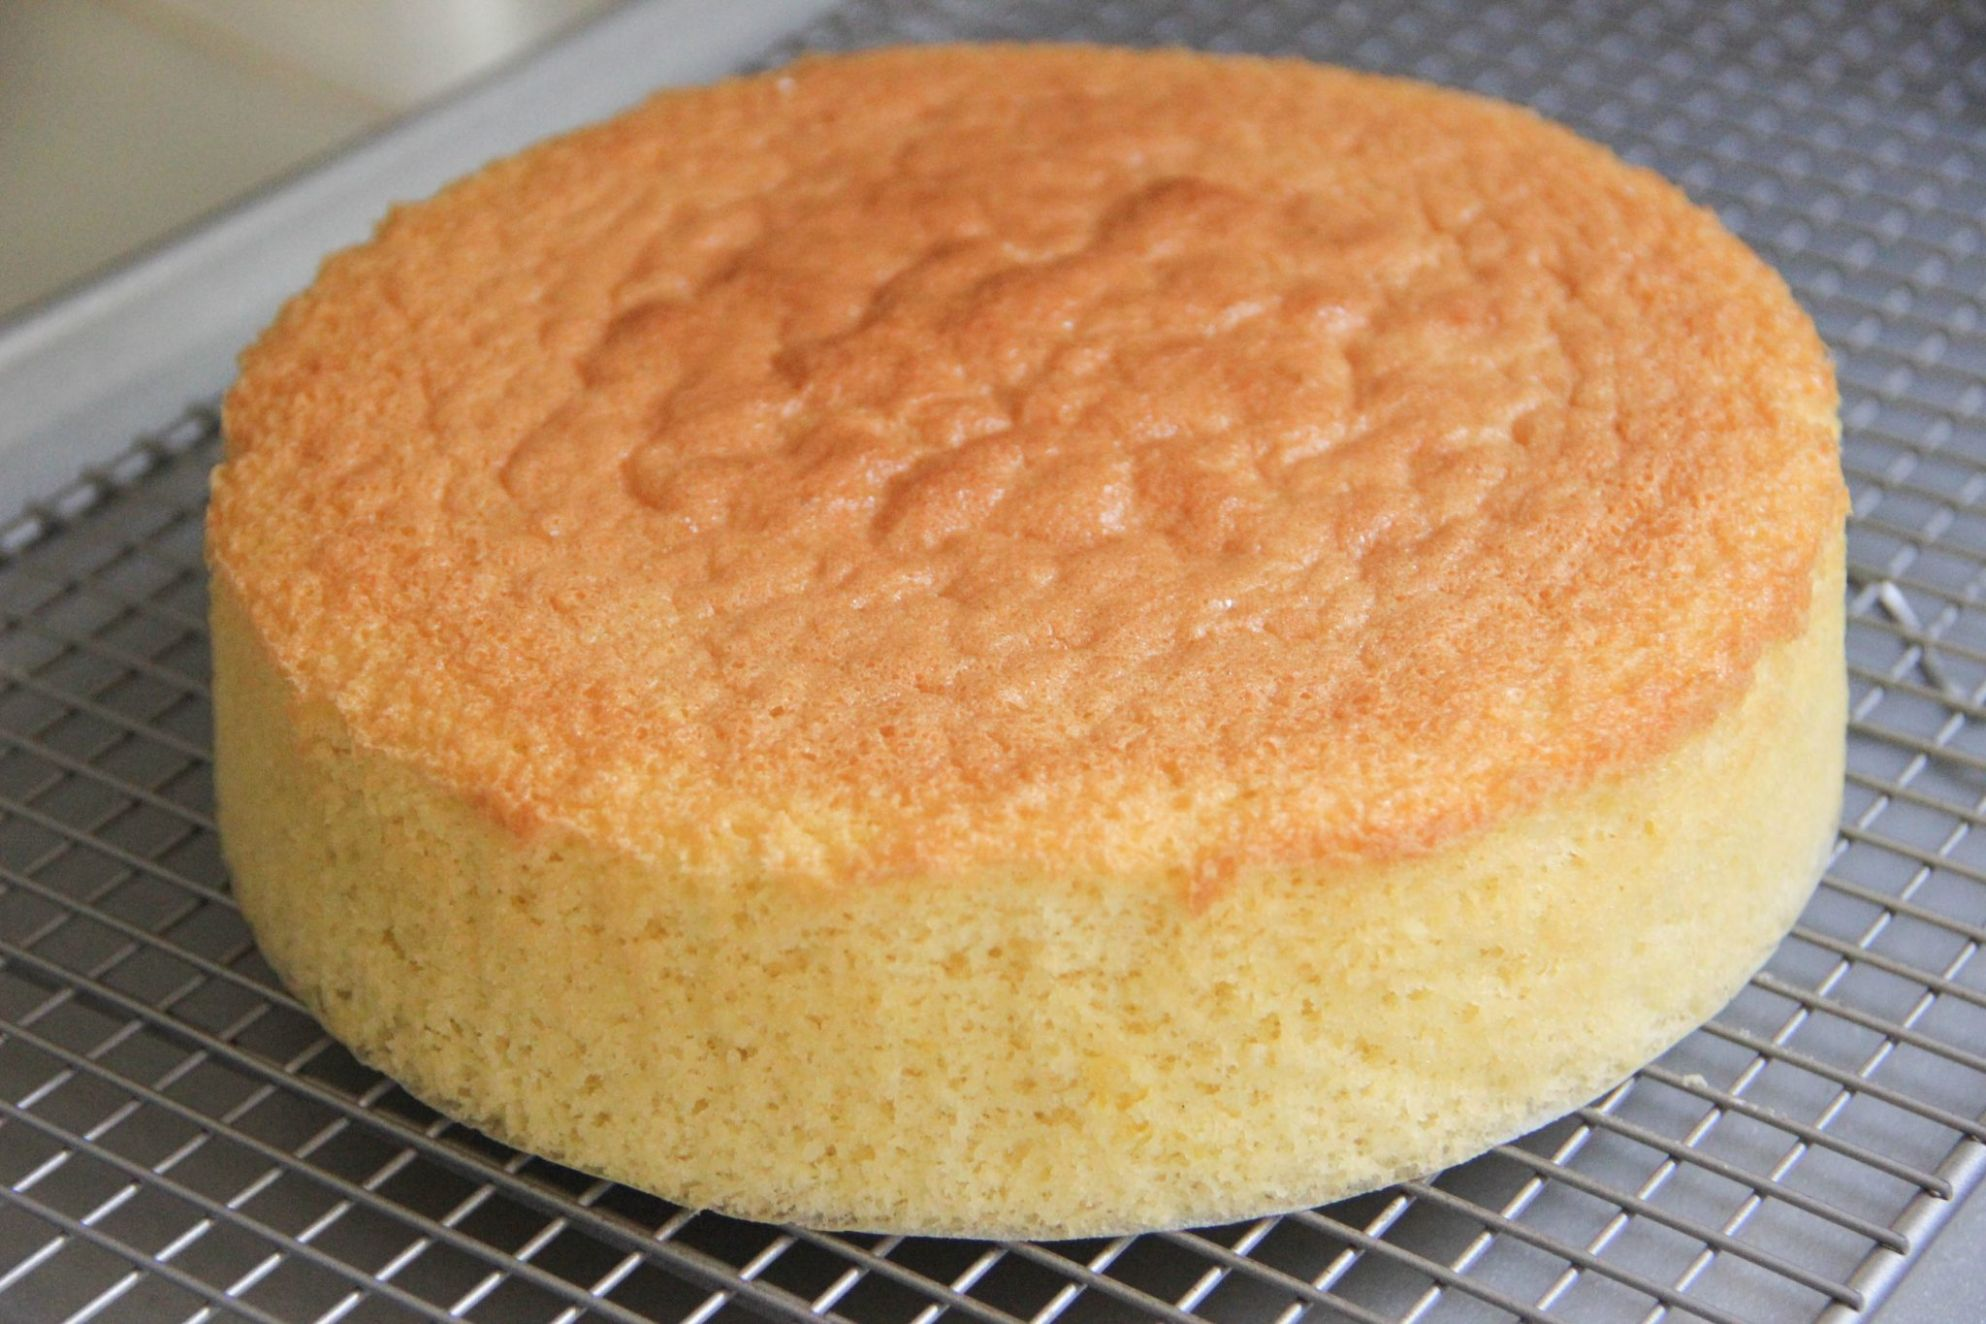 Sponge Cake Recipe - Cake Recipes Plain